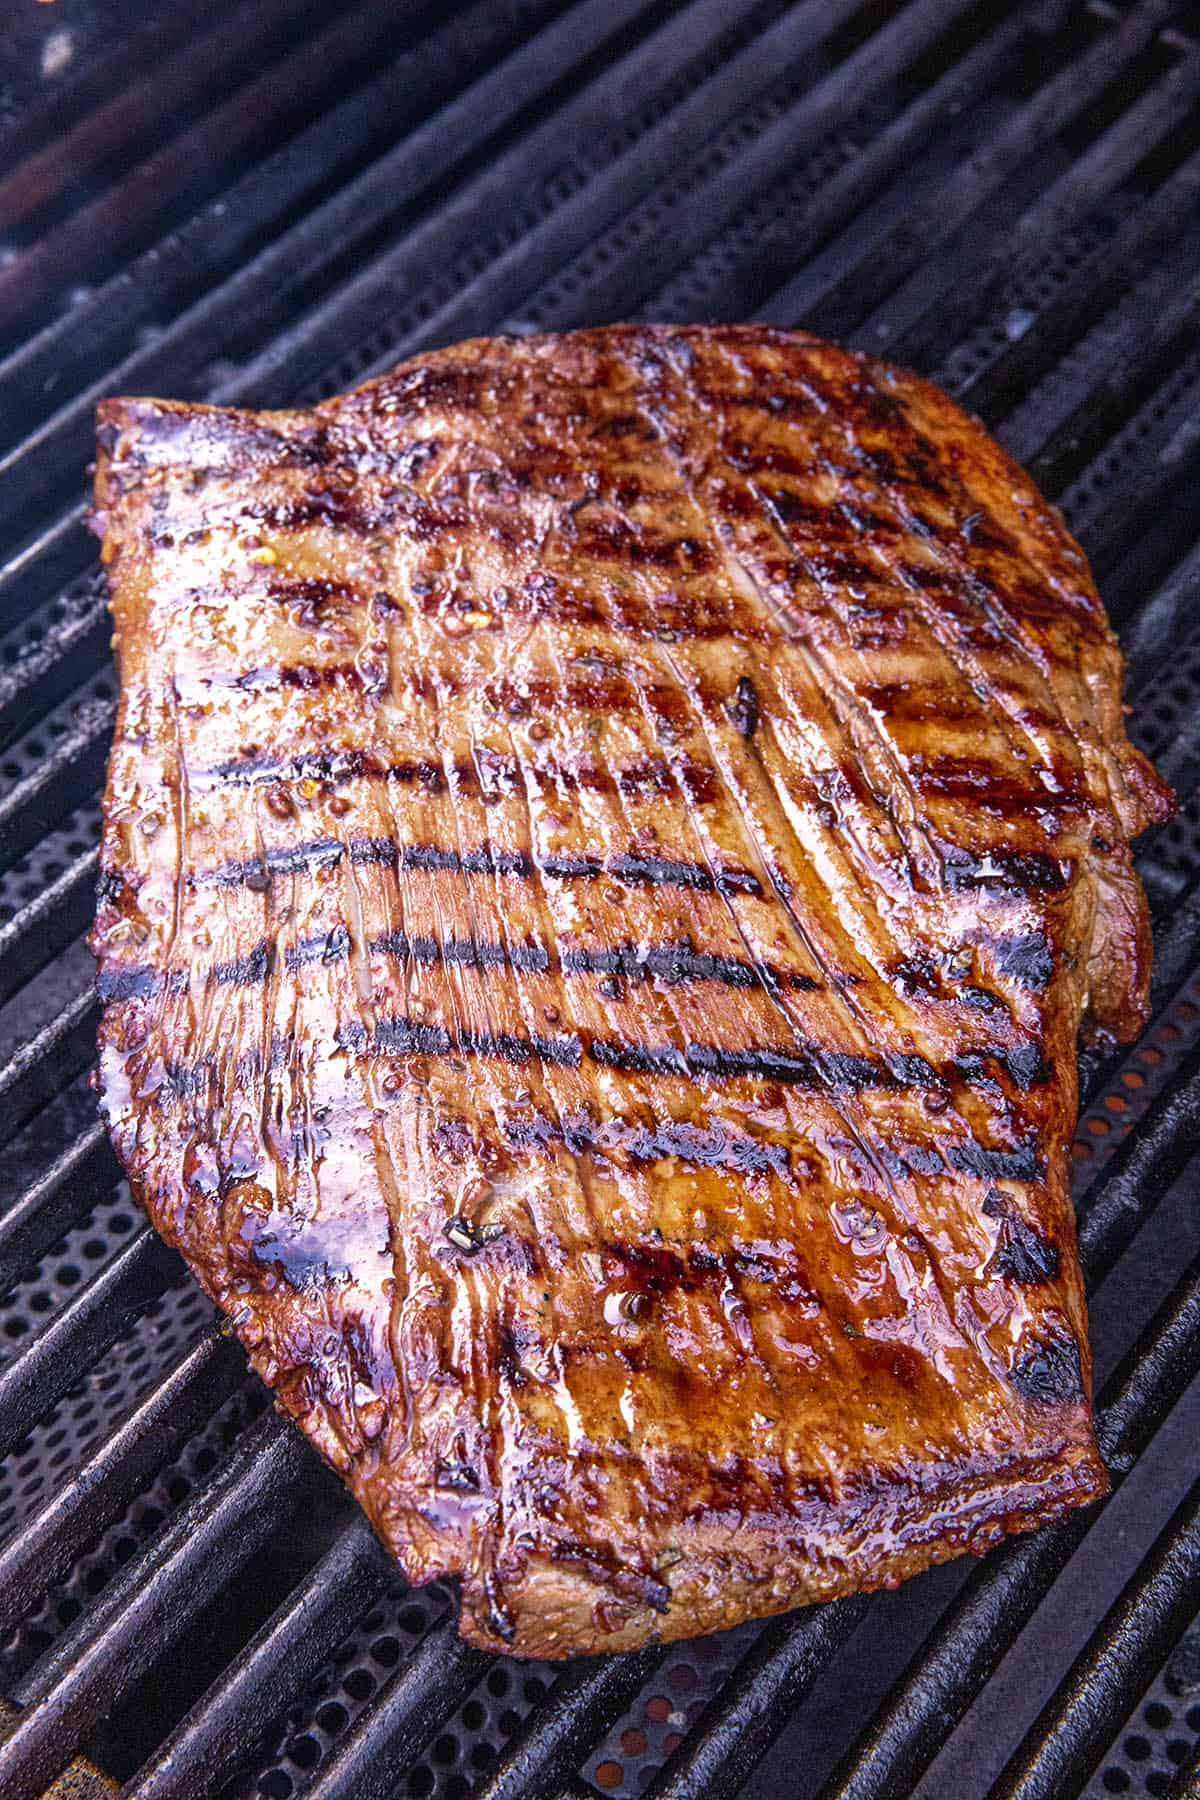 Grilling flank steak on the hot grill